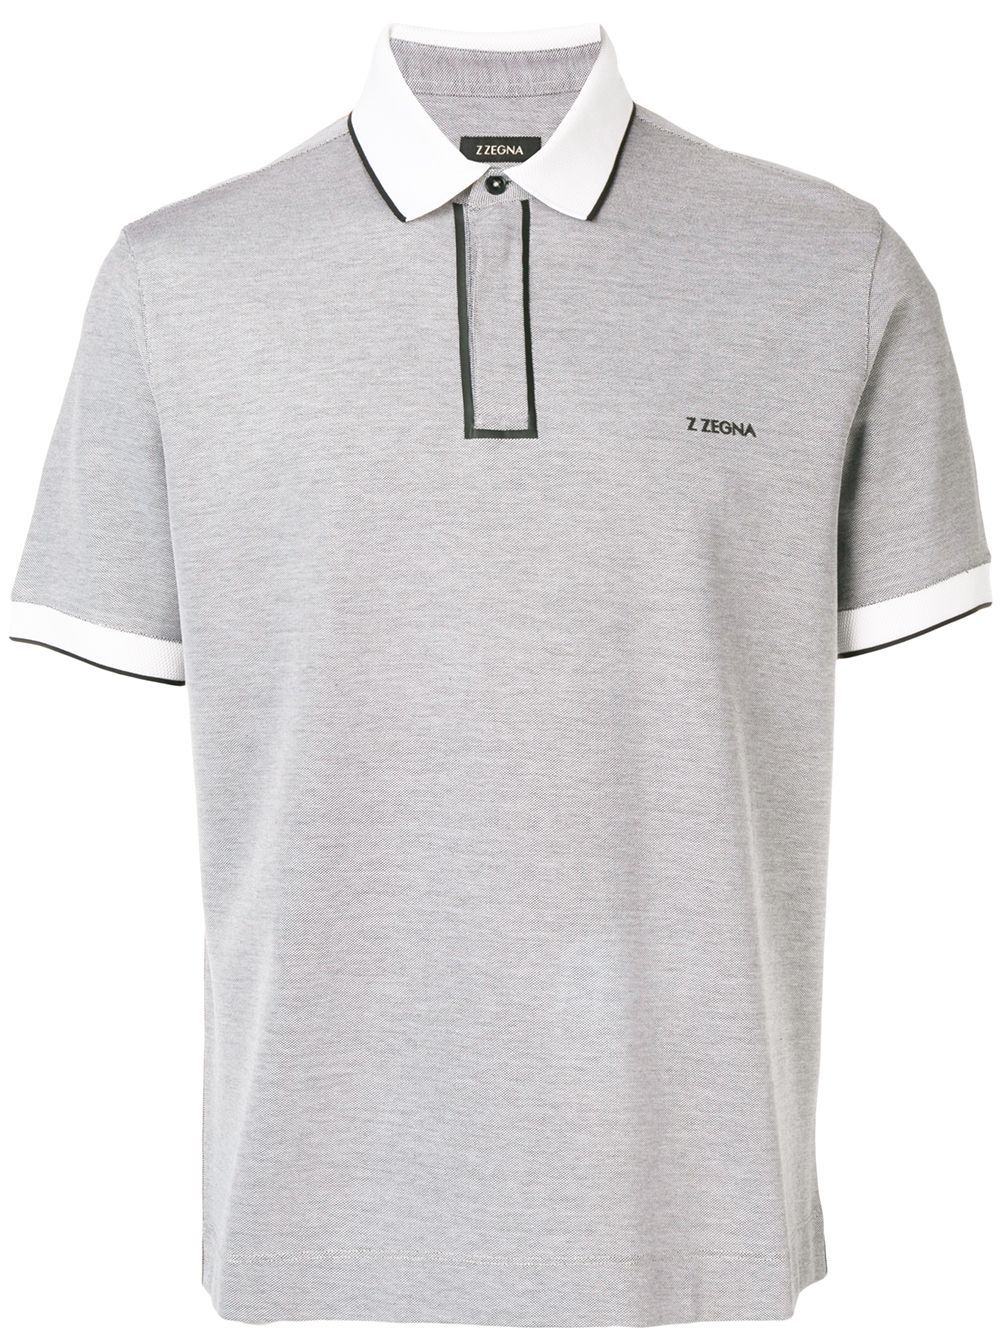 c7c0819a Z Zegna contrast piped polo shirt - Grey in 2019   Products   Polo ...